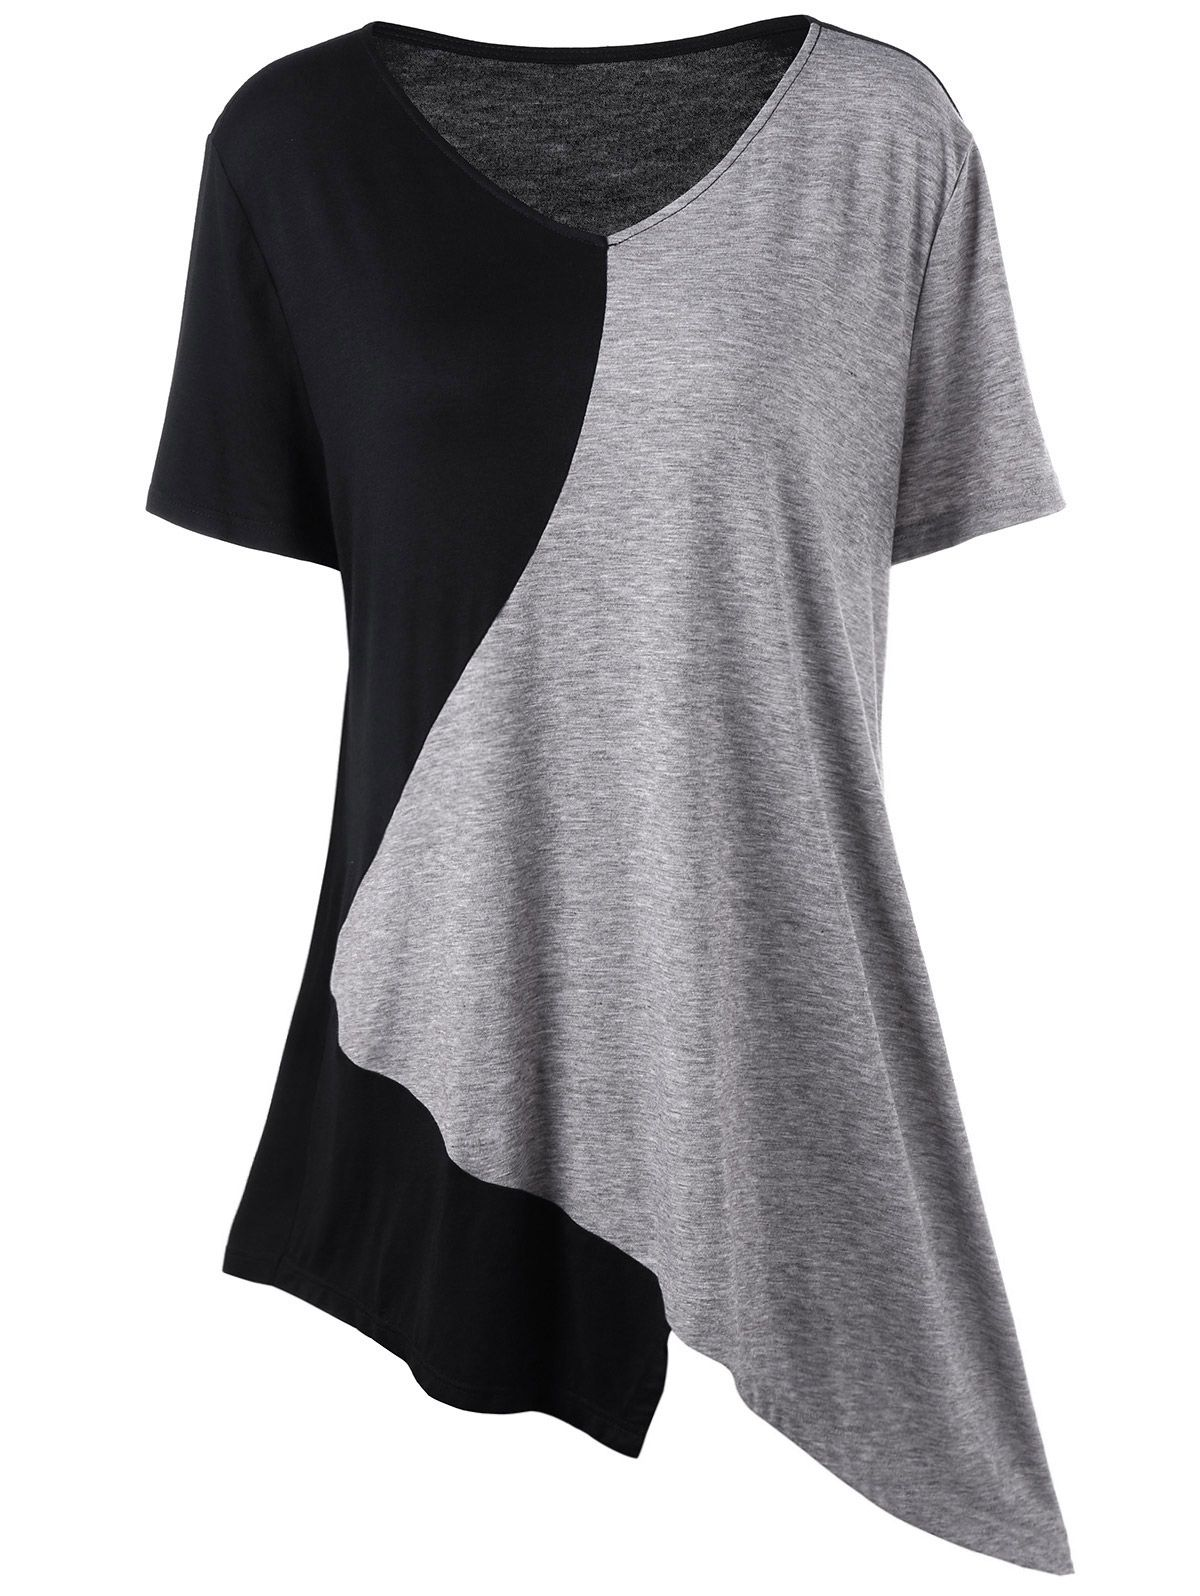 368febf078eb3c Asymmetrical Color Block Plus Size T-Shirt | Tees & T-Shirts in 2019 ...